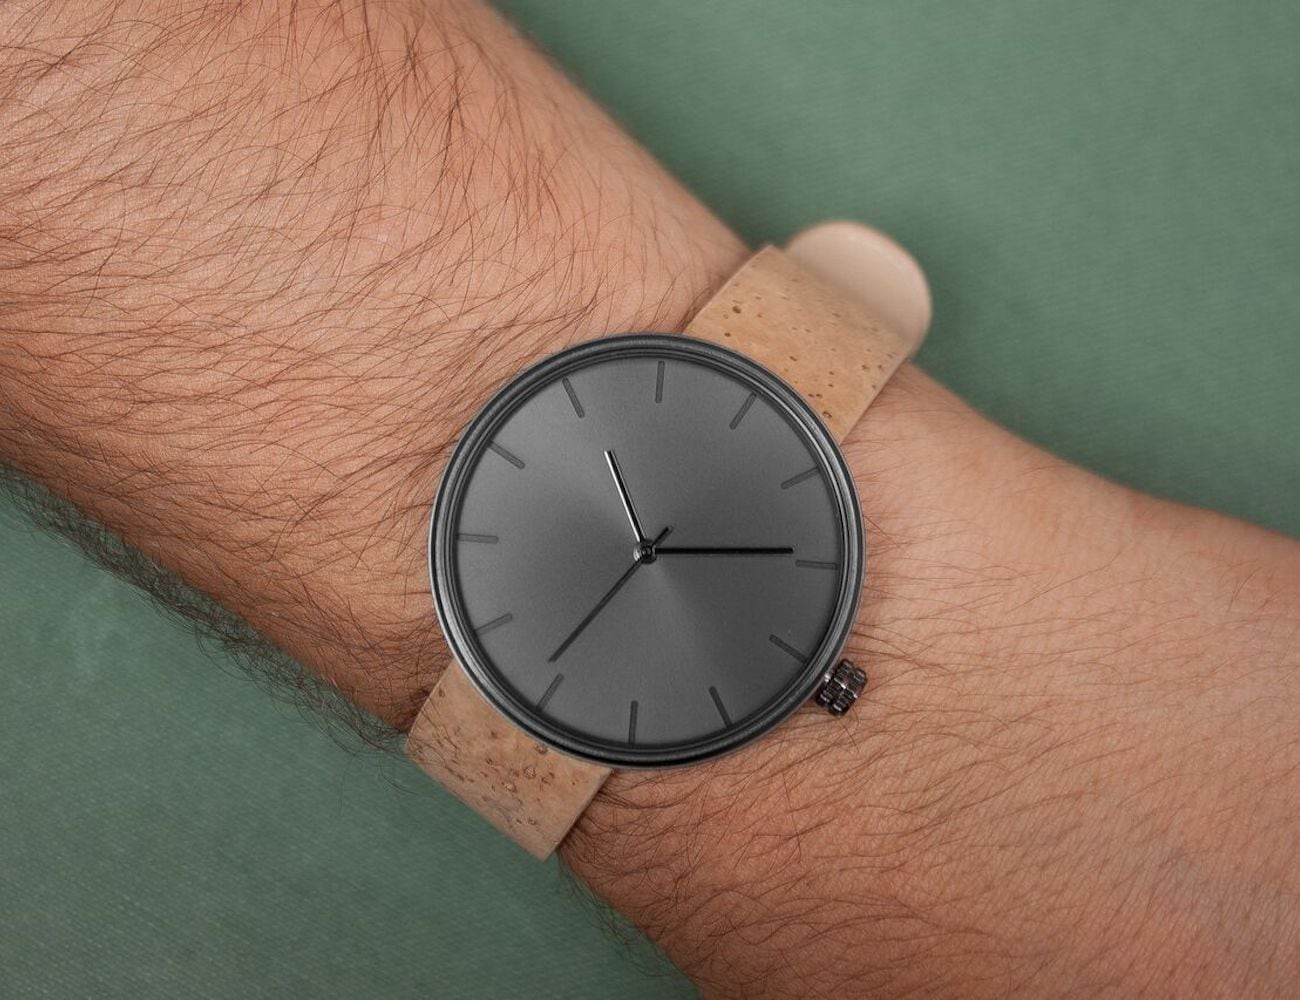 Somm Collection Unisex Wine Infused Watch » Gadget Flow